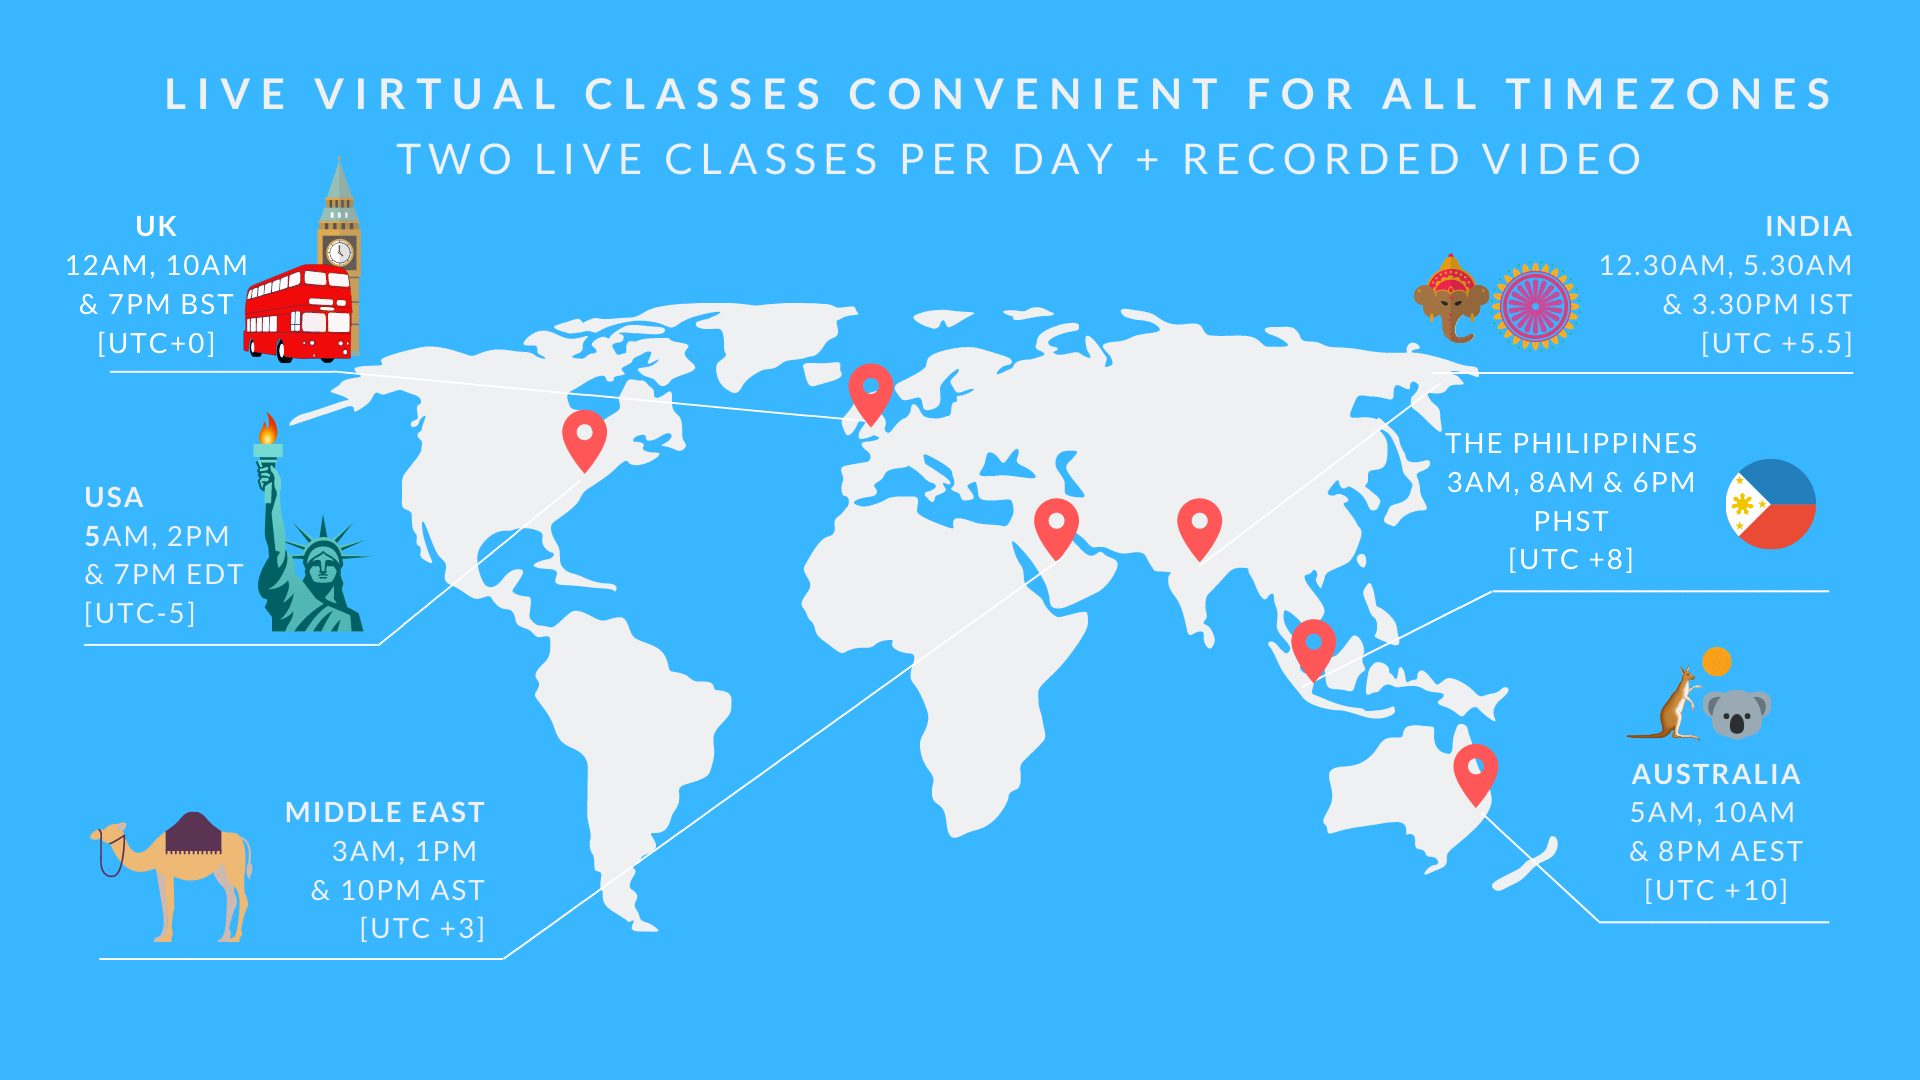 VIRTUAL%20CLASSES_%20WORLDWIDE_NEW%20%282%29.png?time=1607905209724